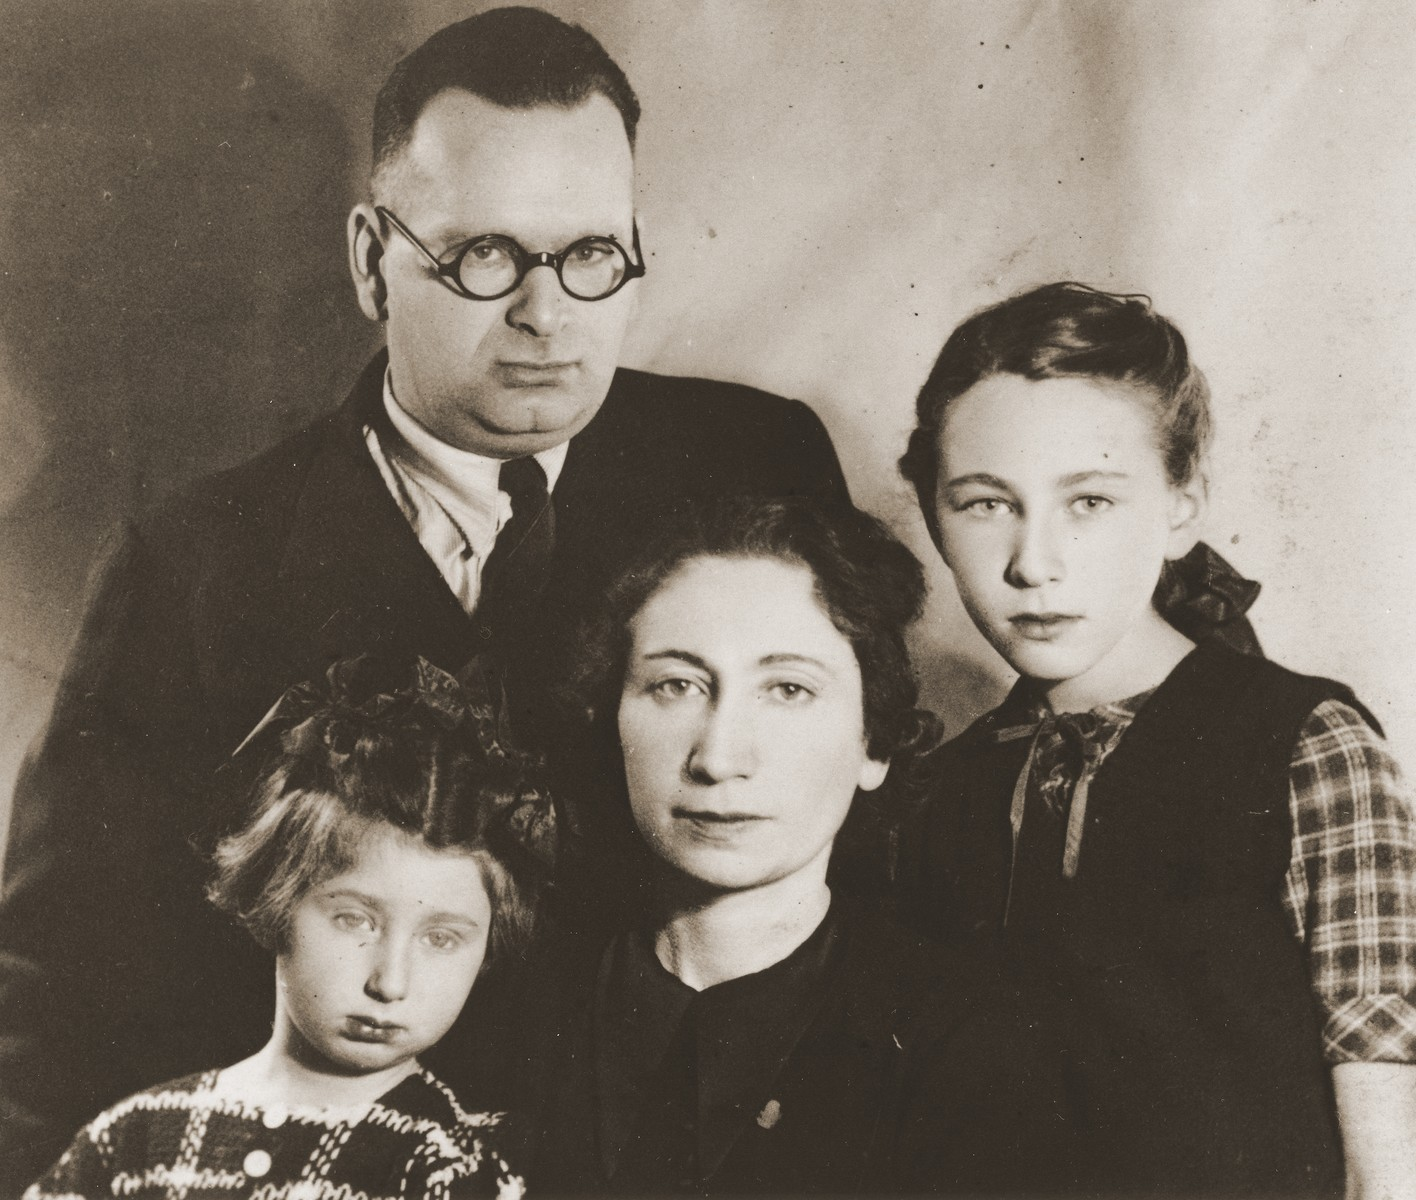 Portrait of Izaak and Malka Fajnsztejn with their daughters, Alicja and Zofja, in the Warsaw ghetto.